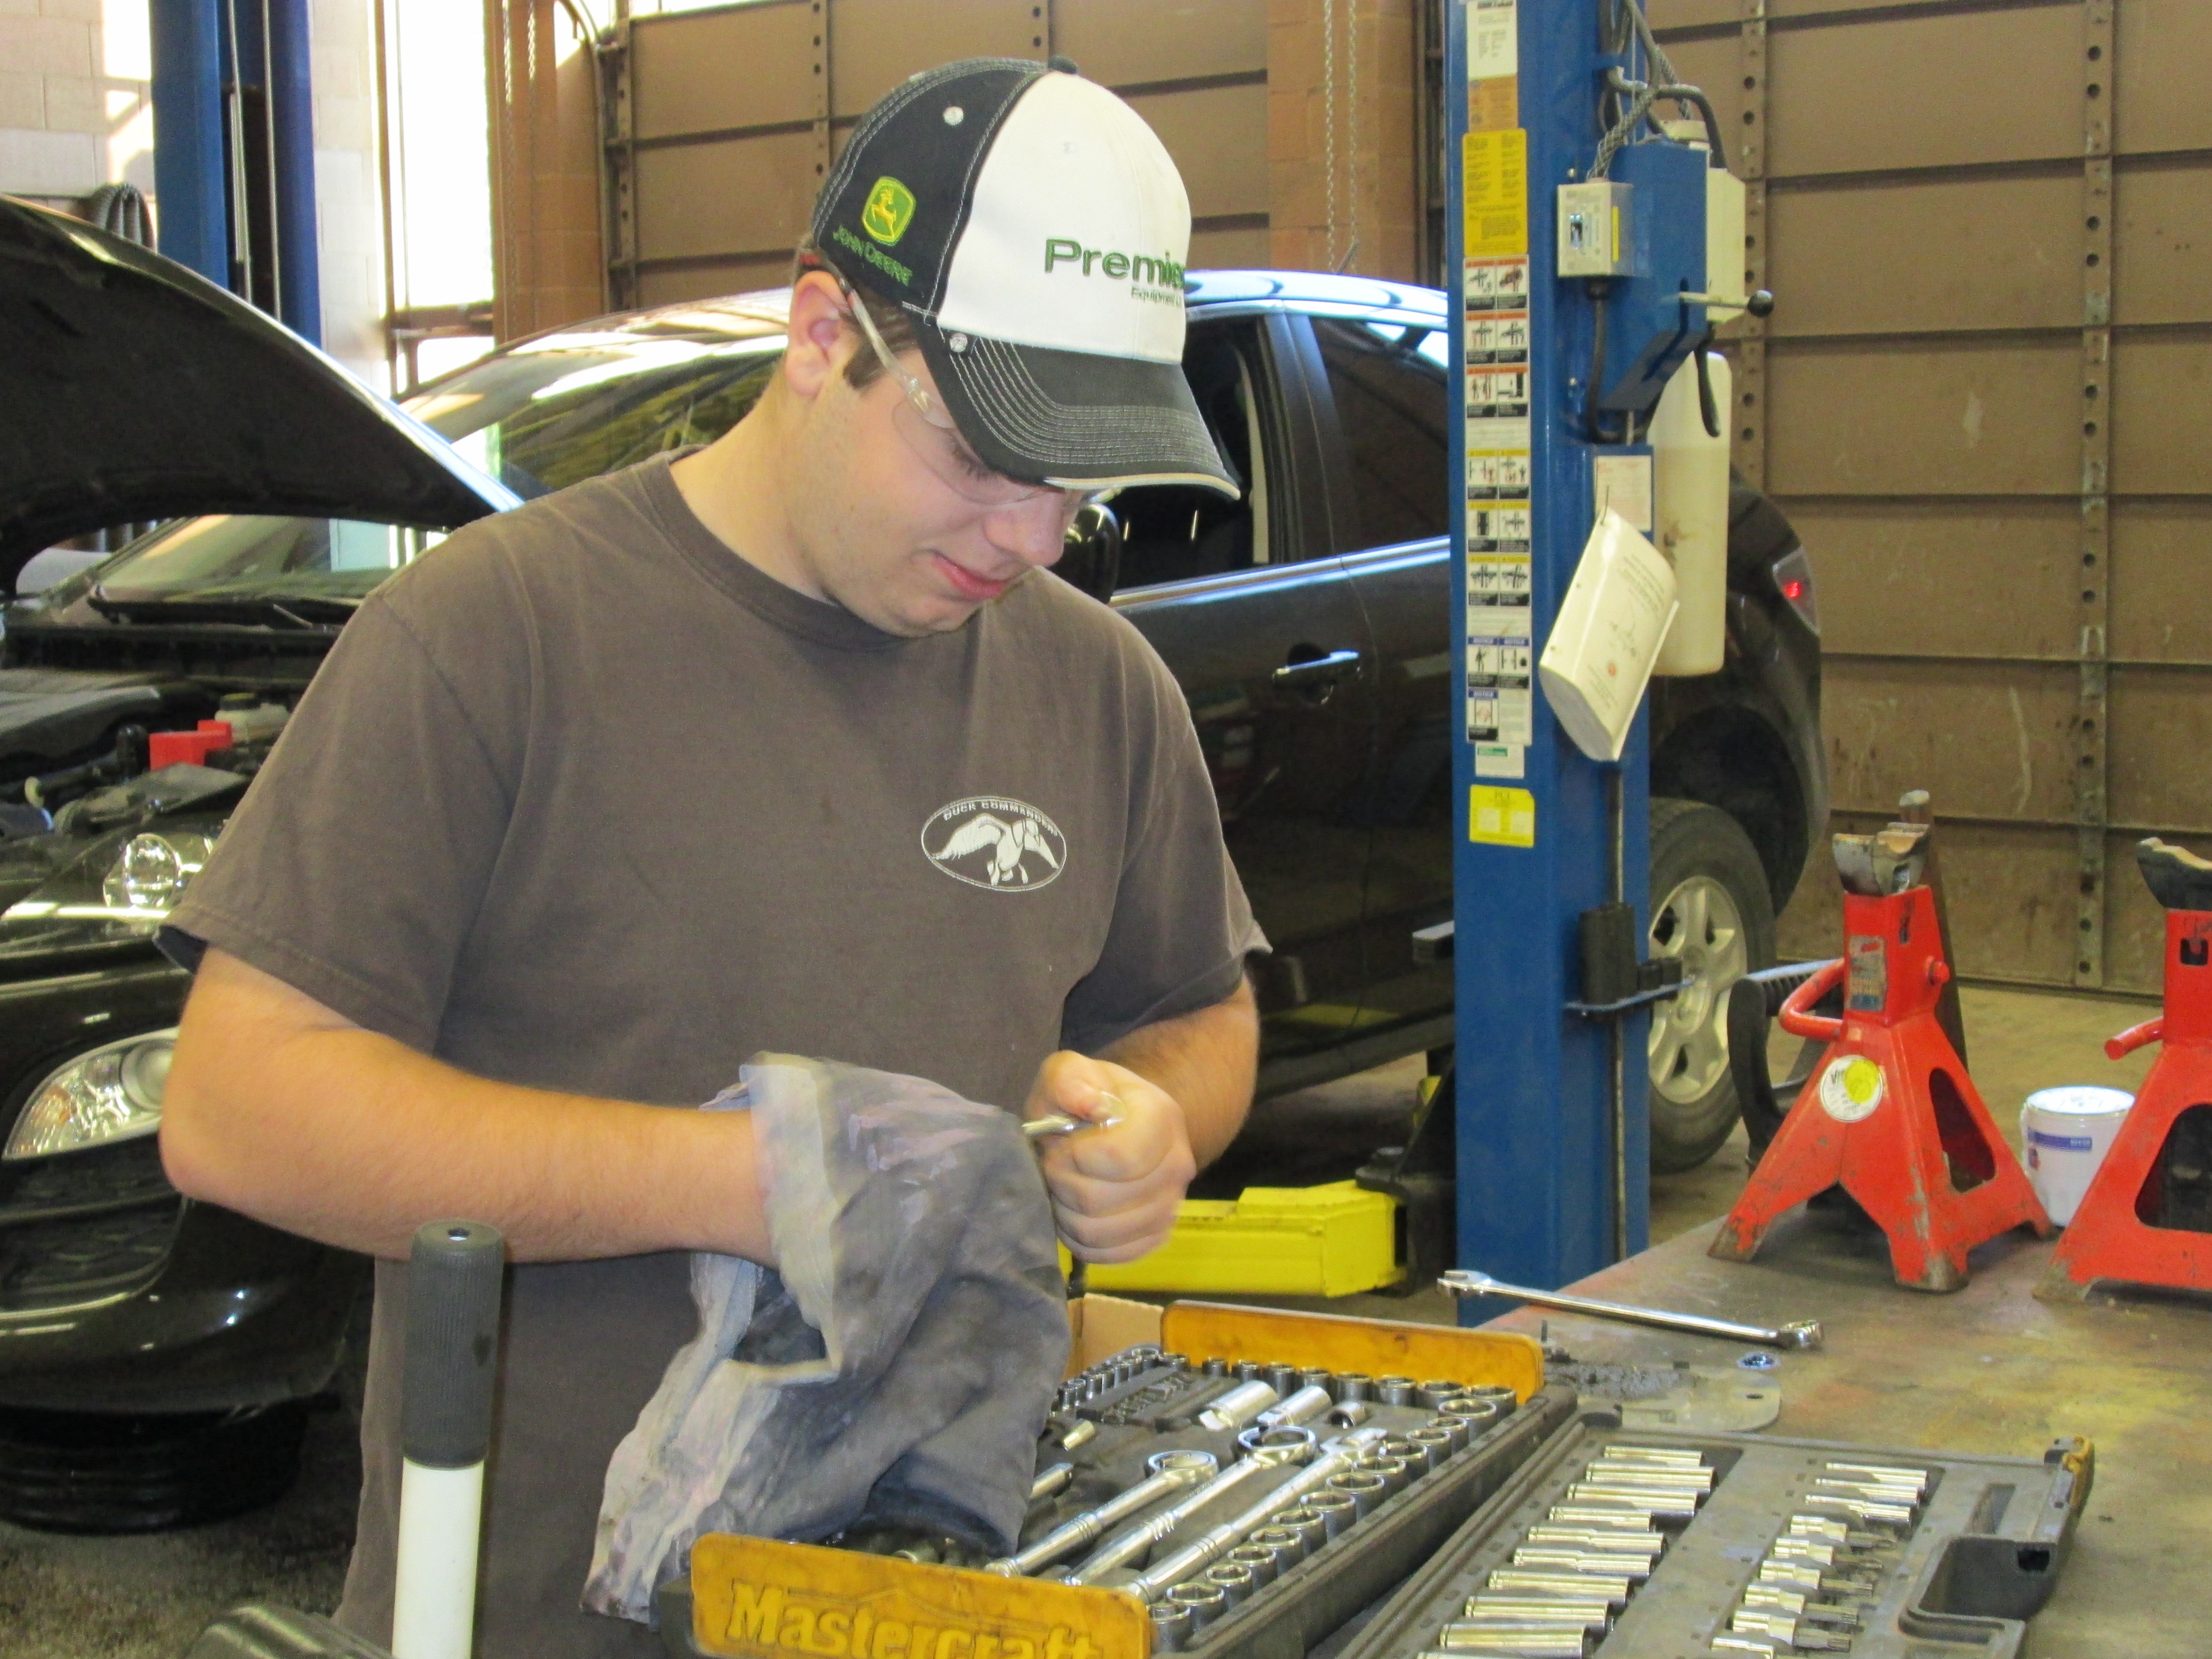 A student works in an automotive mechanic shop